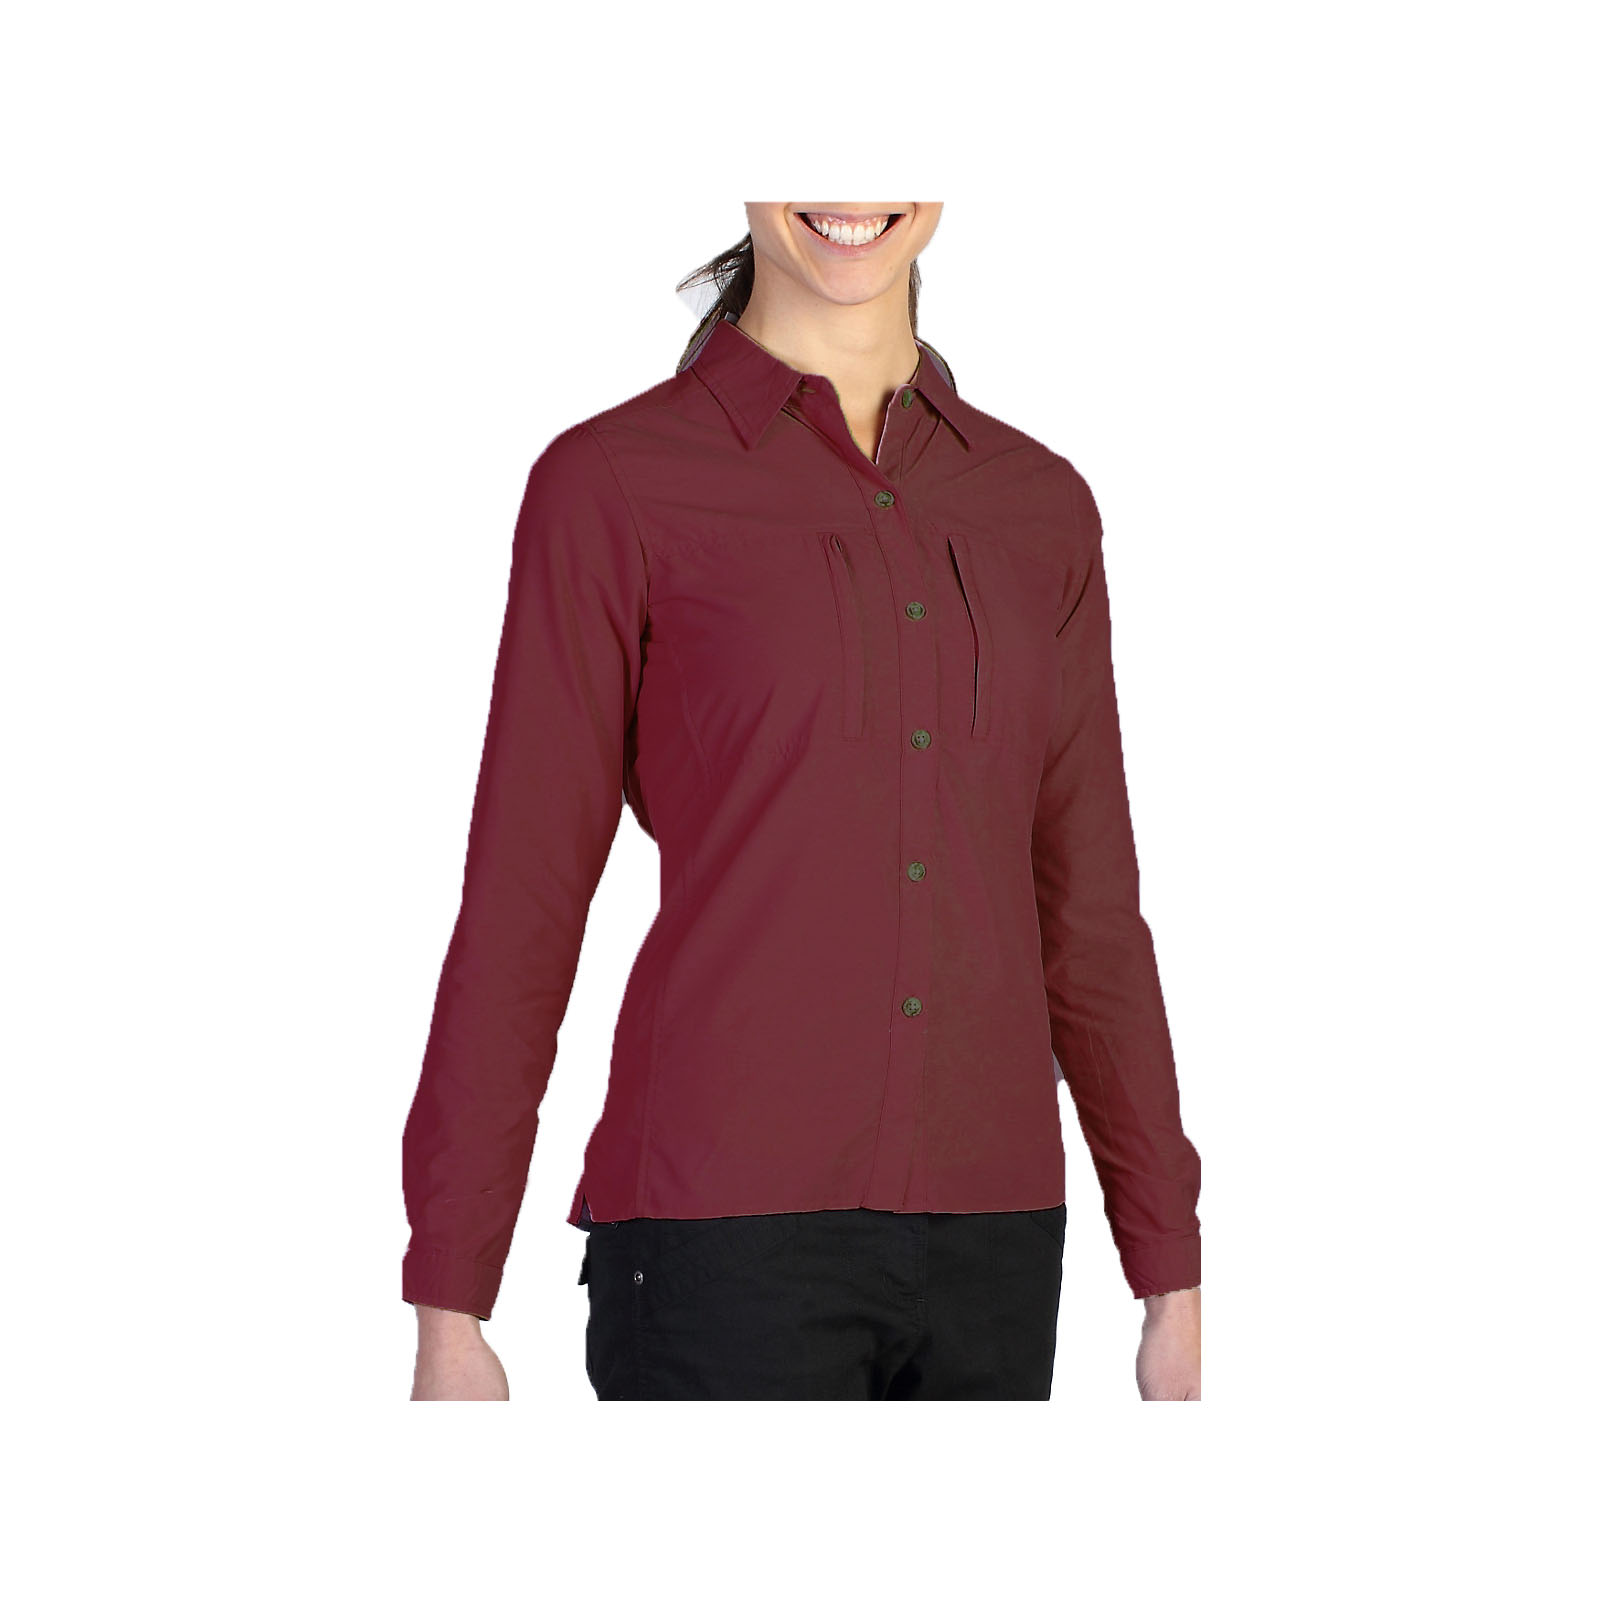 ExOfficio-Dryflylite-Long-Sleeve-Women-039-s-Shirt-UV-Protection-Hiking-2001-1015 thumbnail 8